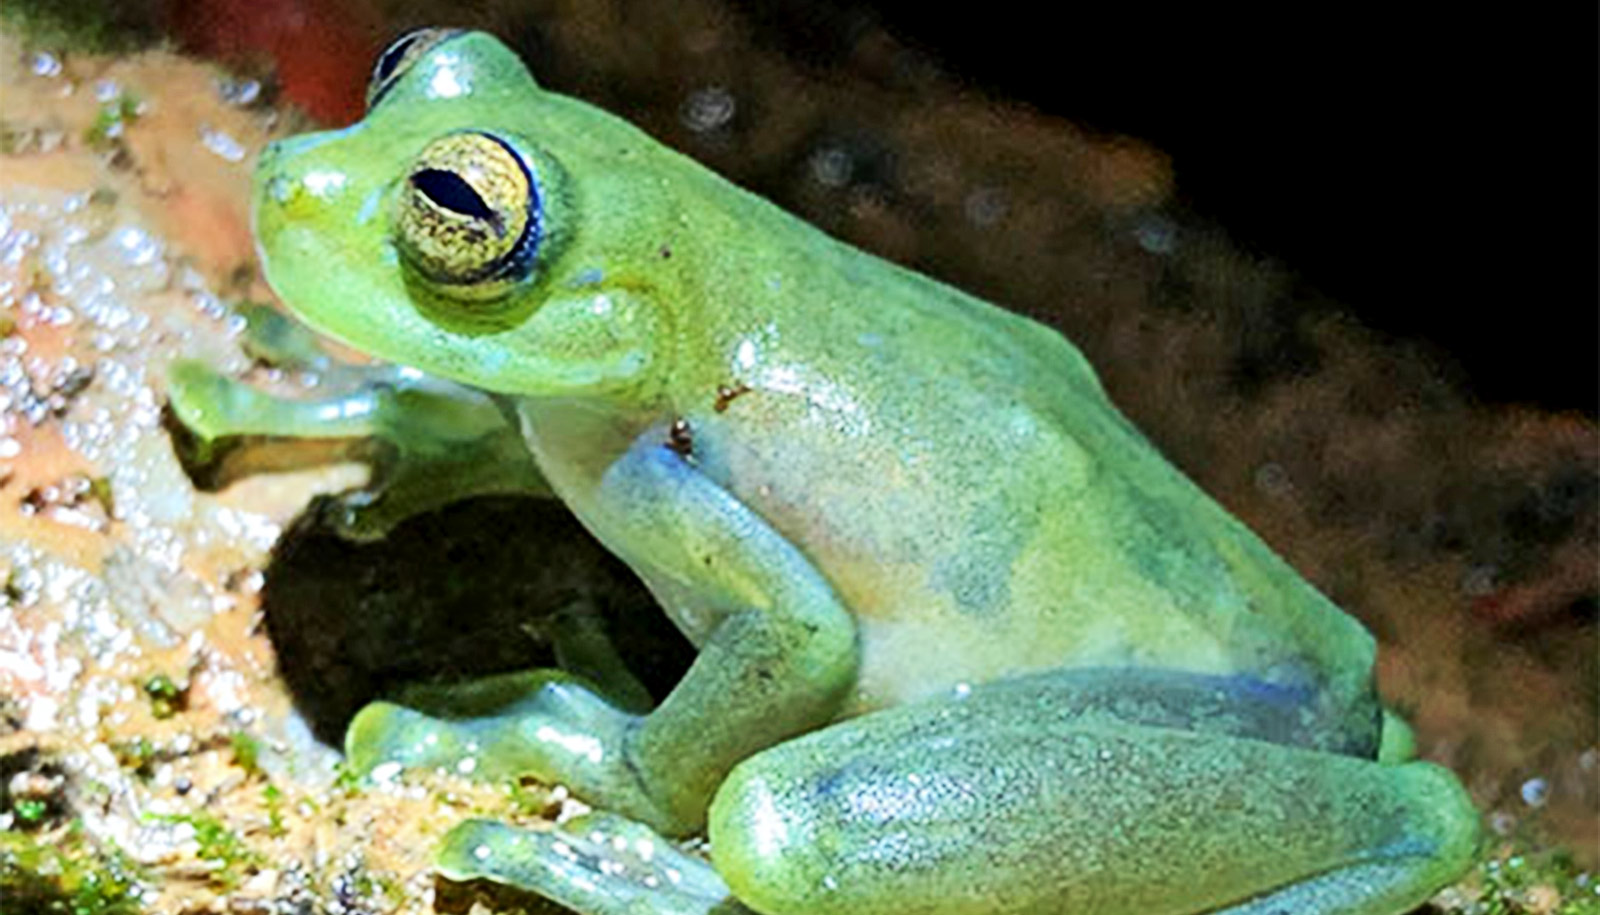 Watch a glass frog get funky when mating croaks are too quiet - Futurity